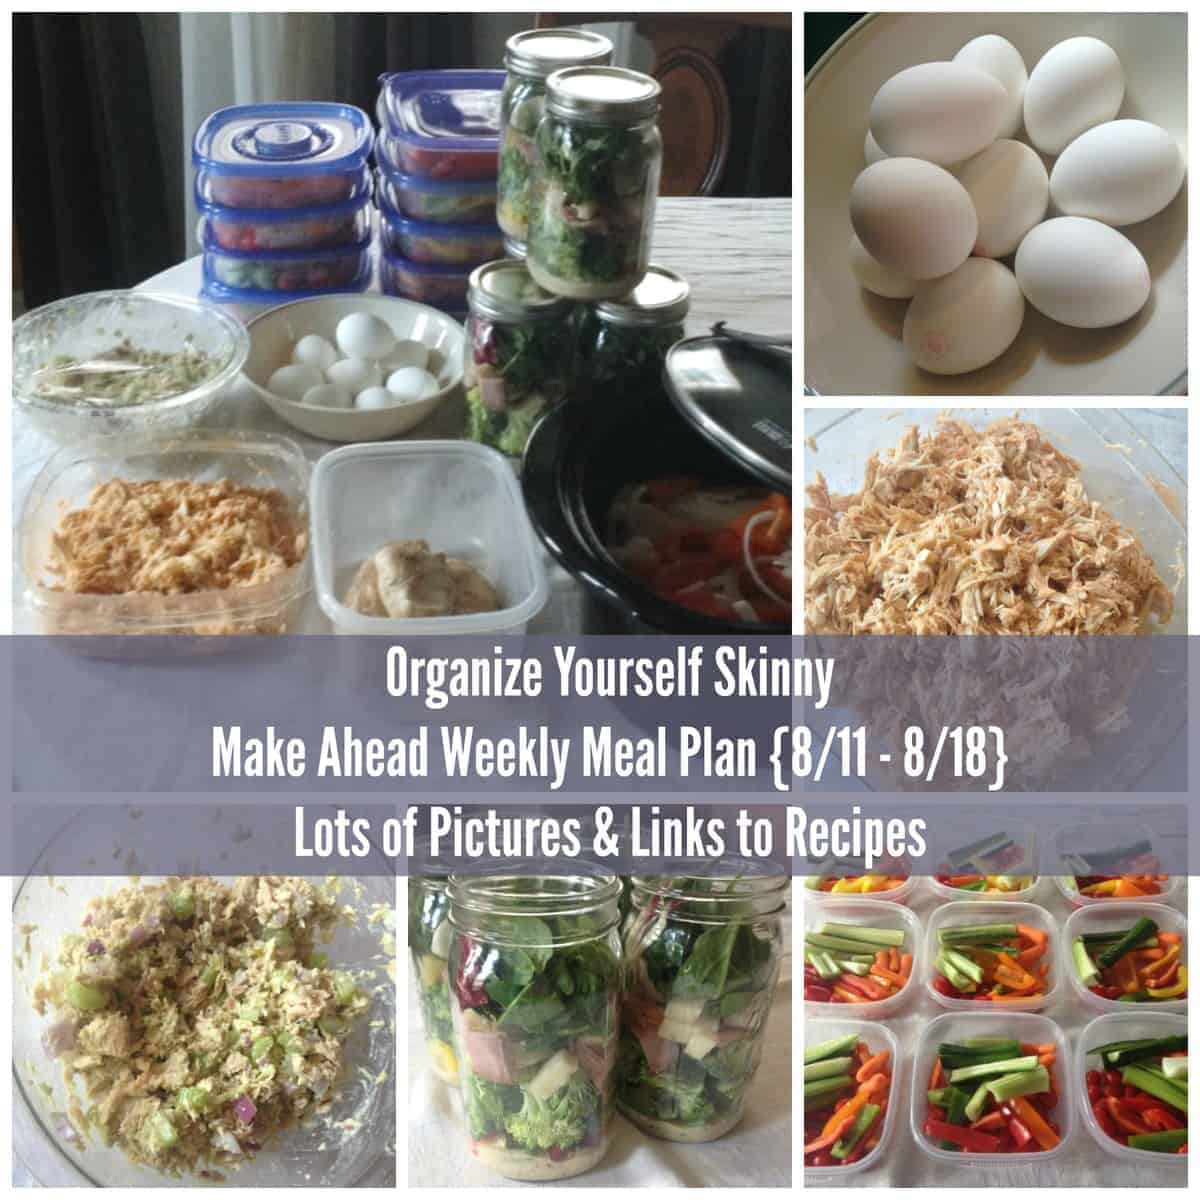 Make ahead meal plan and exercise schedule meal prep for the week